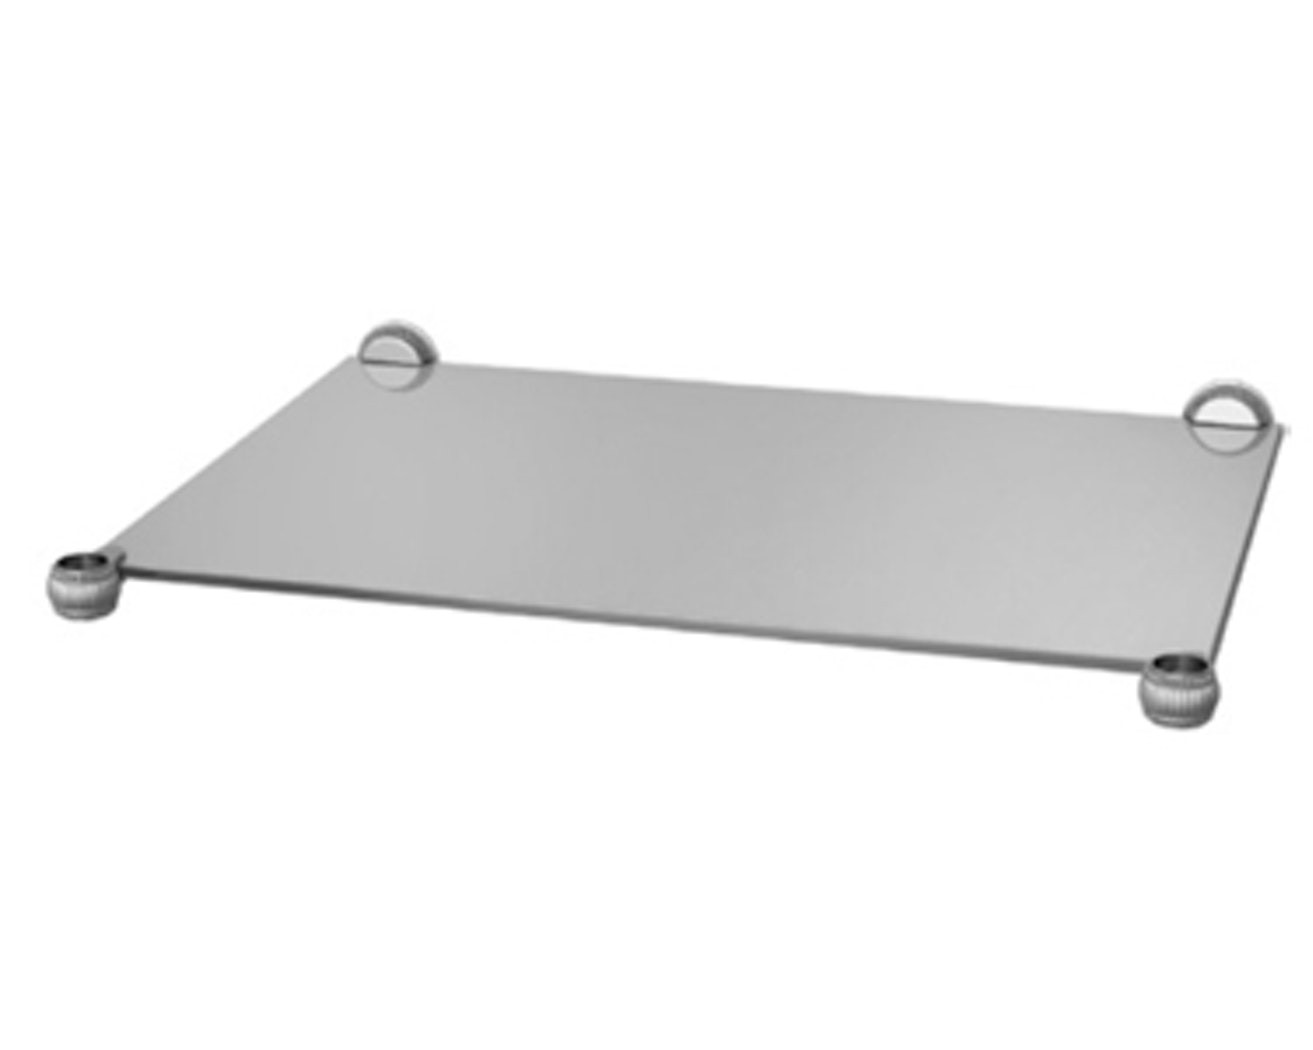 WATERMARK CON36-HS-0.8 STRATFORD 31 1/2 INCH WALL MOUNT HAMPSHIRE OR SMOOTH TEMPERED GLASS SHELF FOR 36 INCH CONSOLE